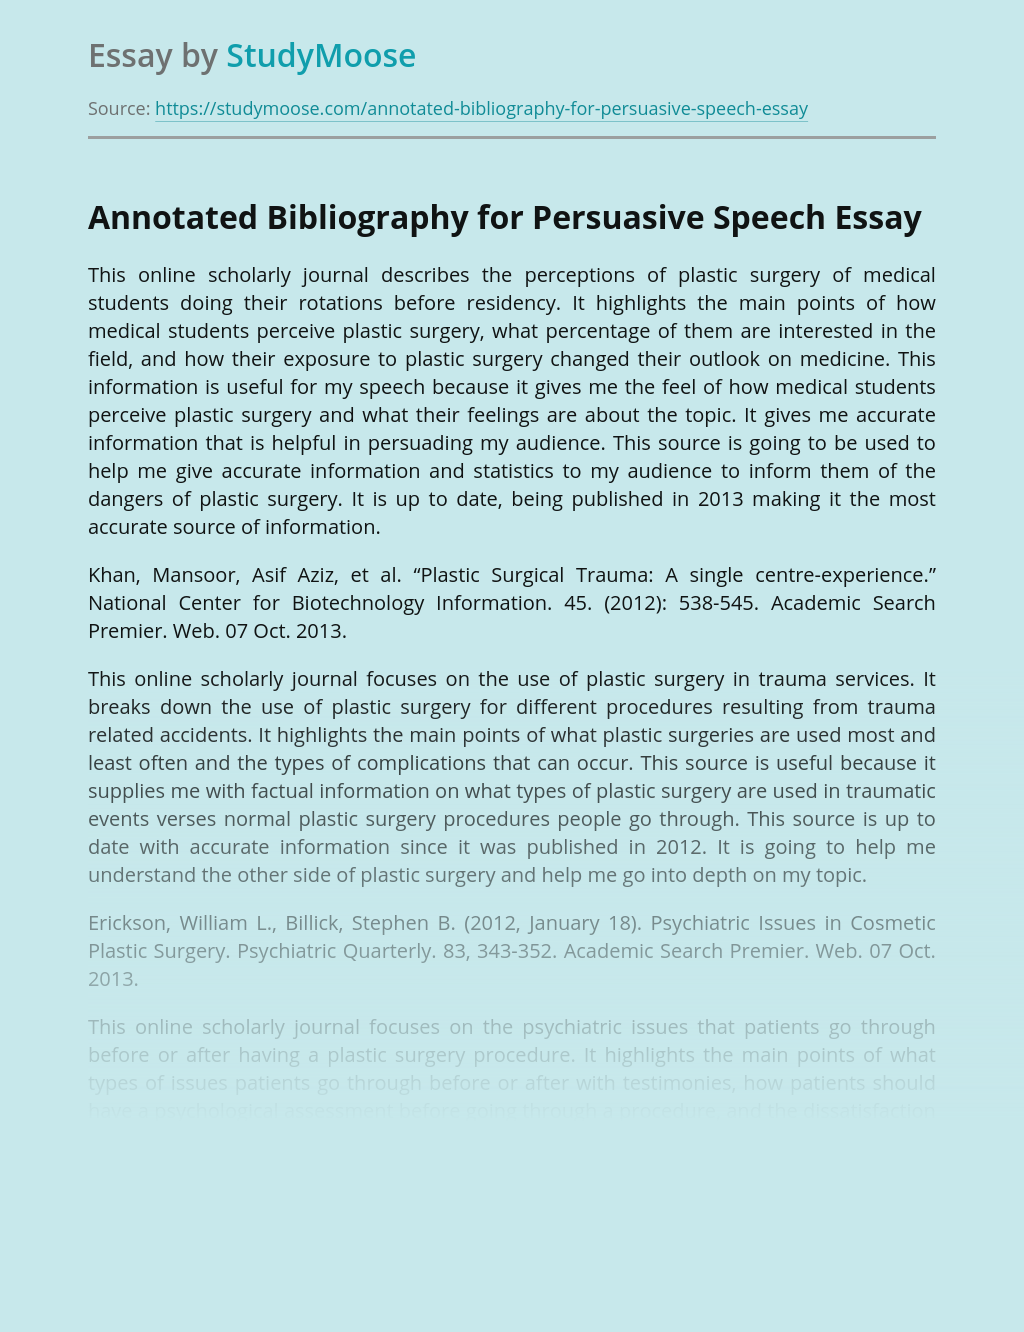 Annotated Bibliography for Plastic Surgery Speech Presentation